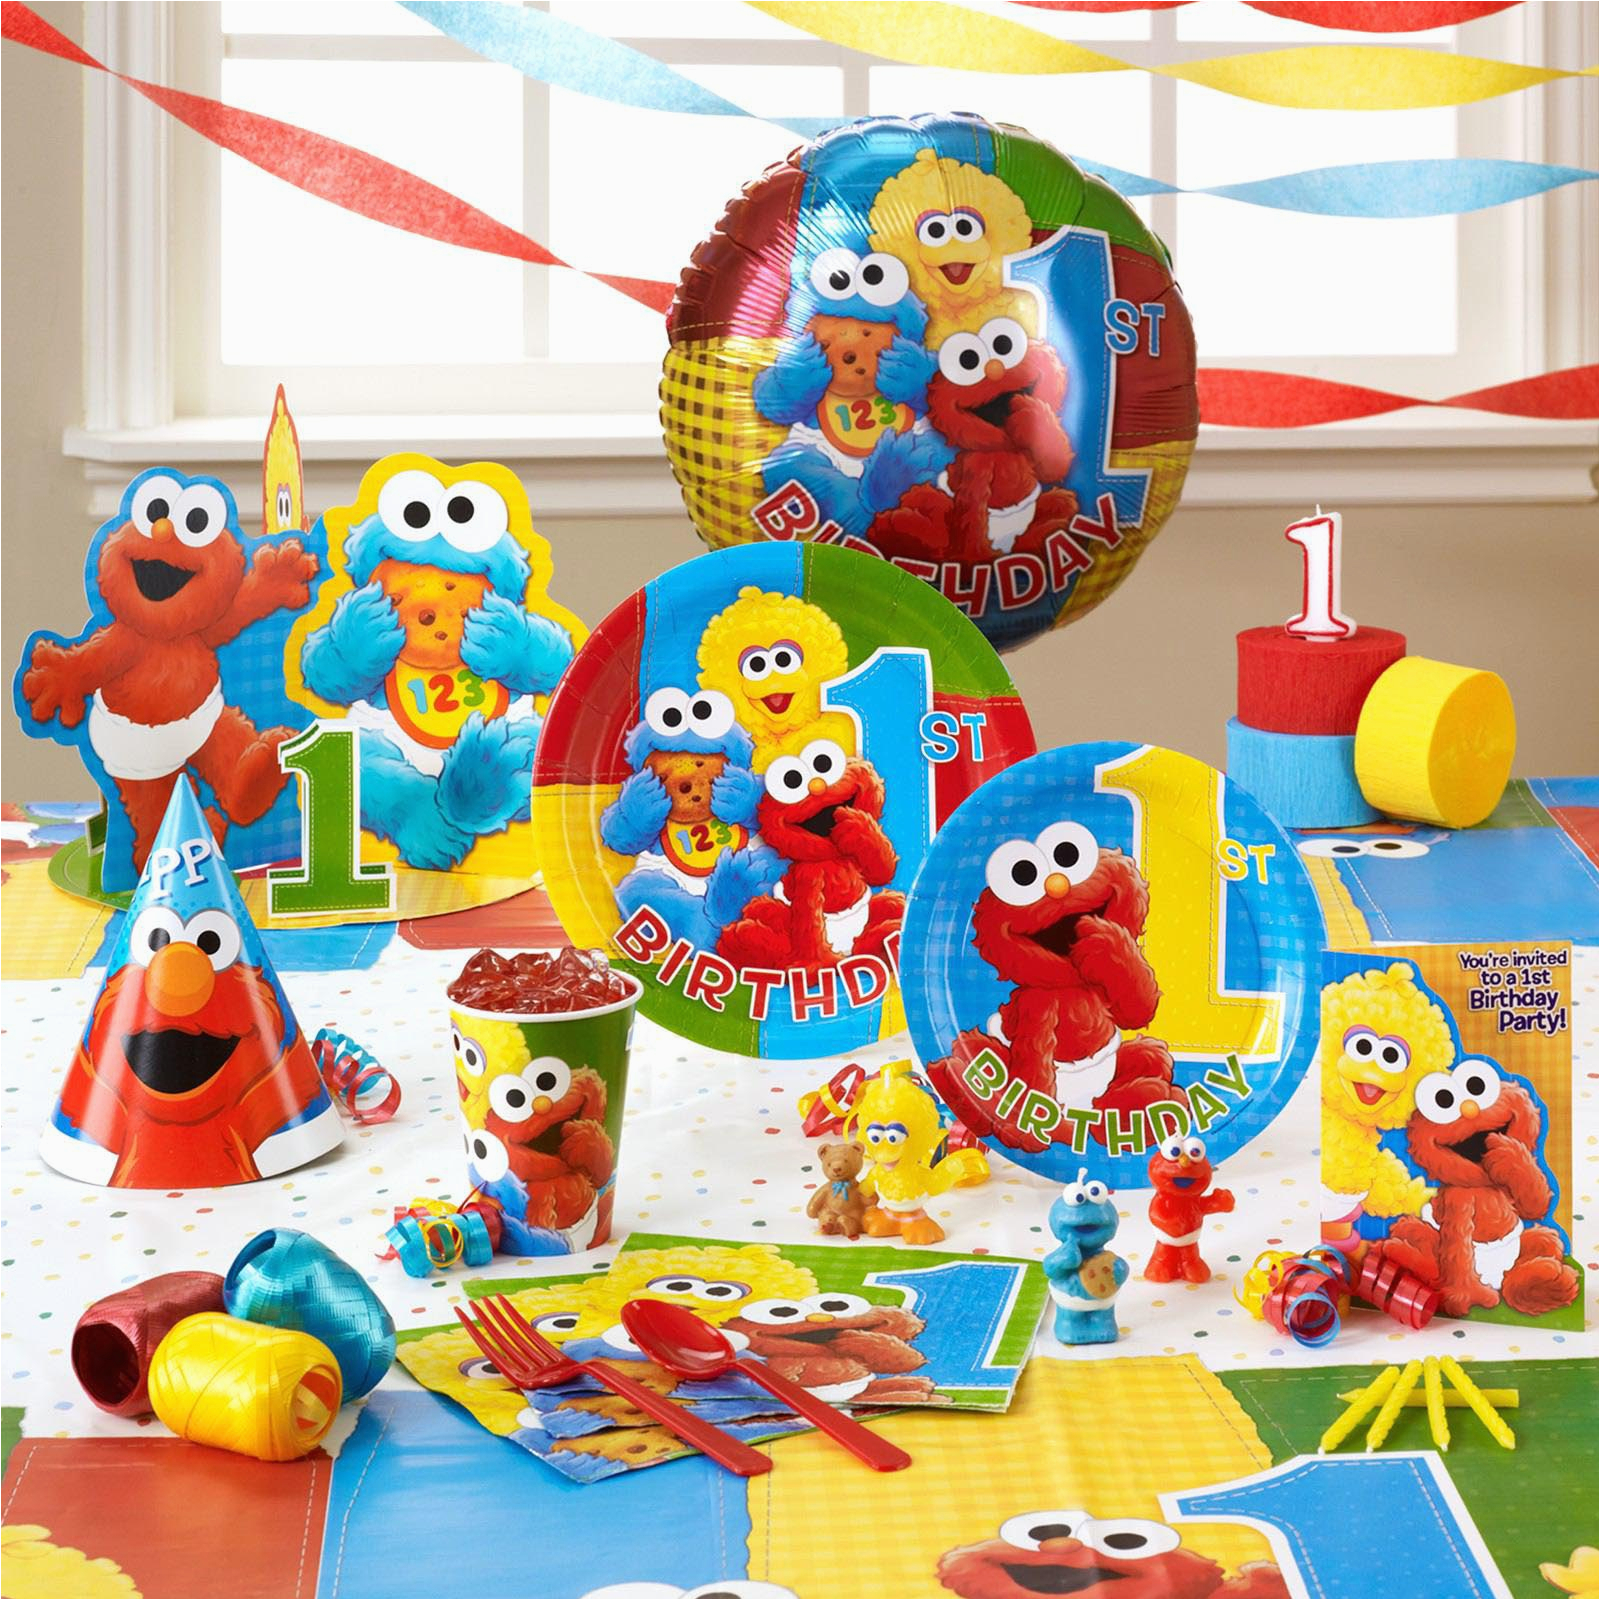 Elmo Decorations for 1st Birthday Elmo Birthday Party Tips Home Party Ideas